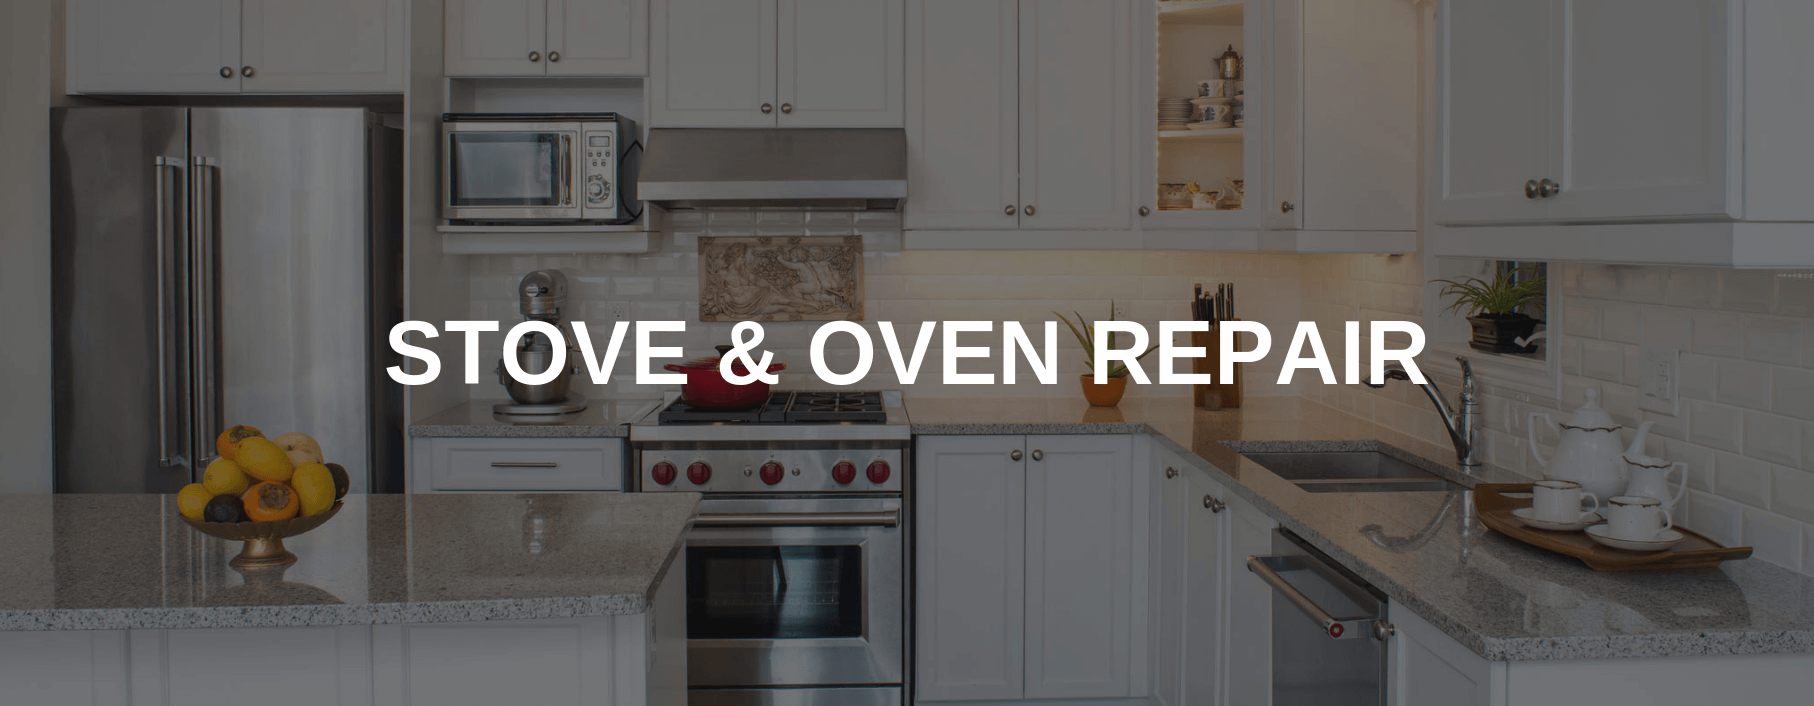 stove repair forest hills